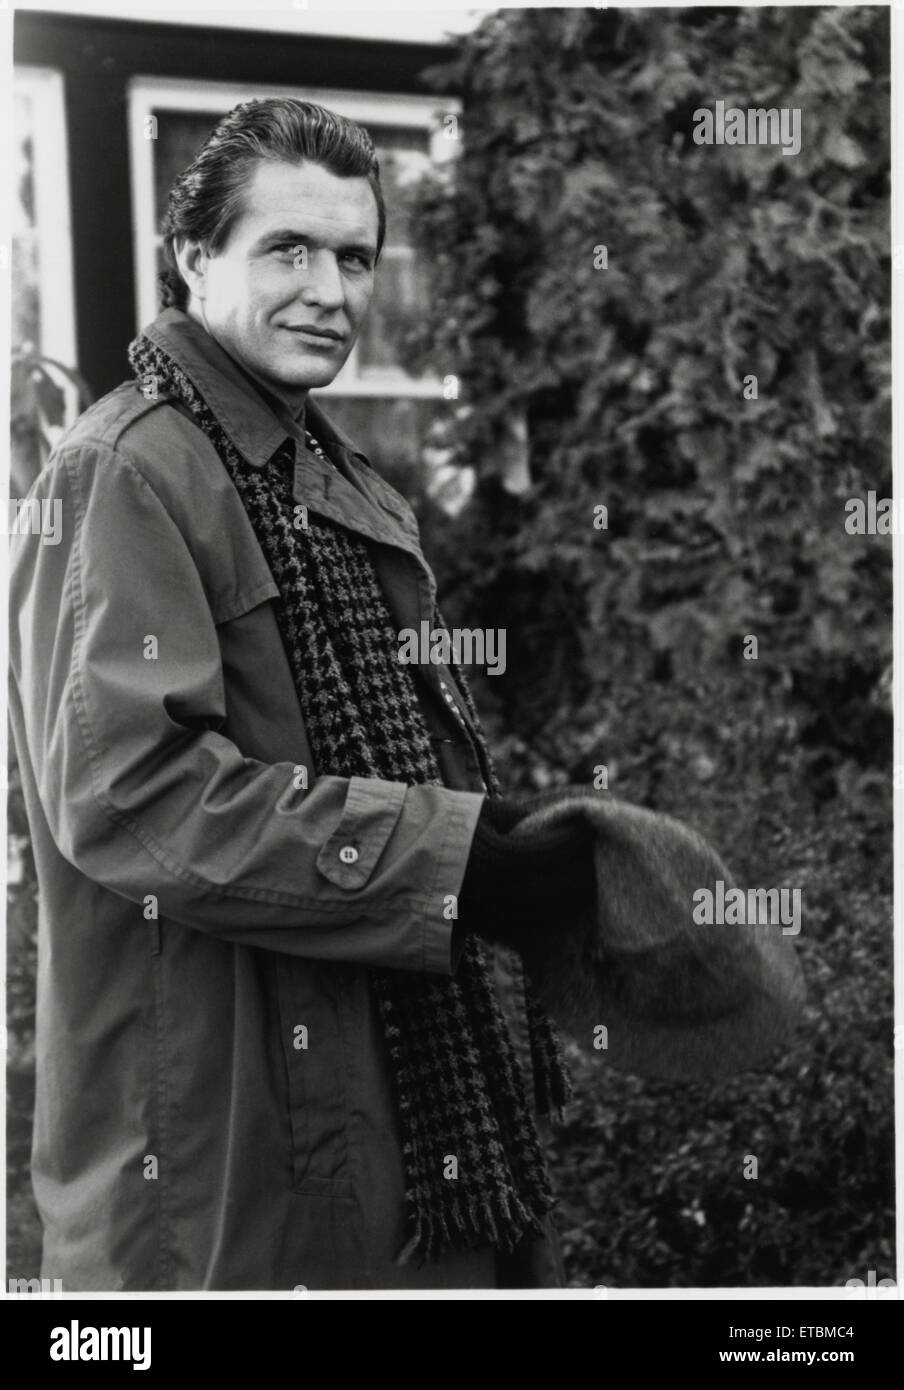 """Tom Berenger, on-set of the Film """"Love at Large"""", 1990 - Stock Image"""